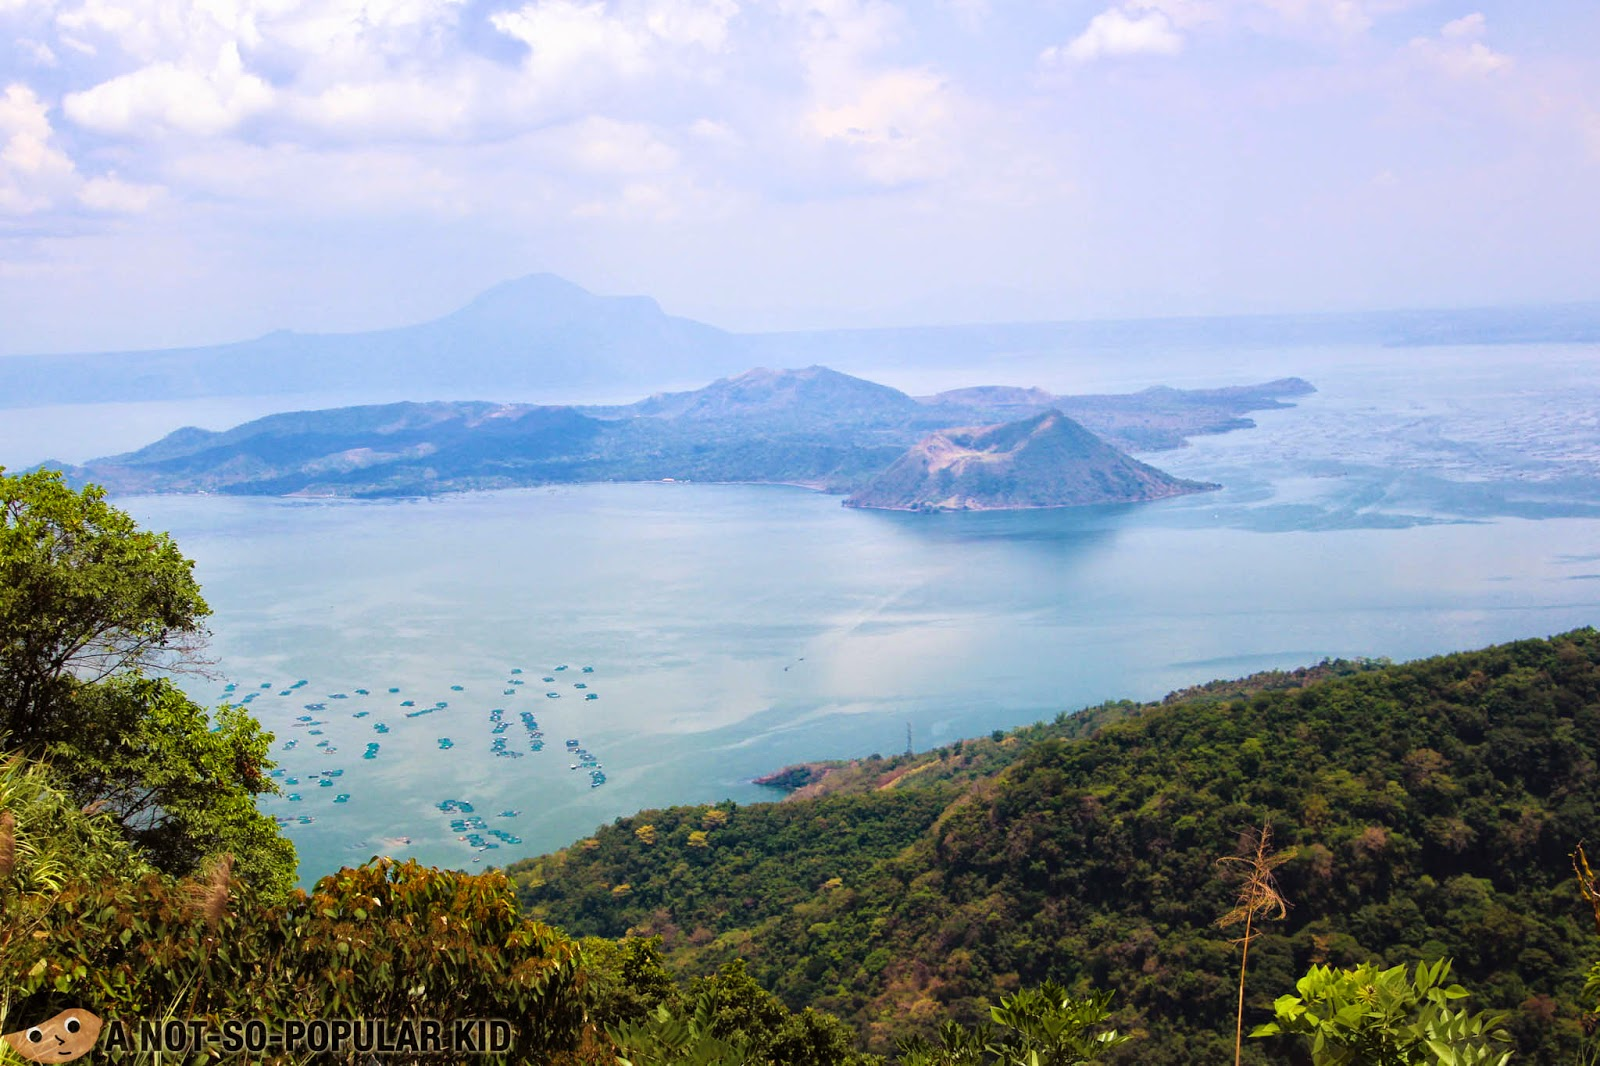 The amazing view of Taal Volcano and the Lake from RSM Lutong Bahay (Tagaytay City)